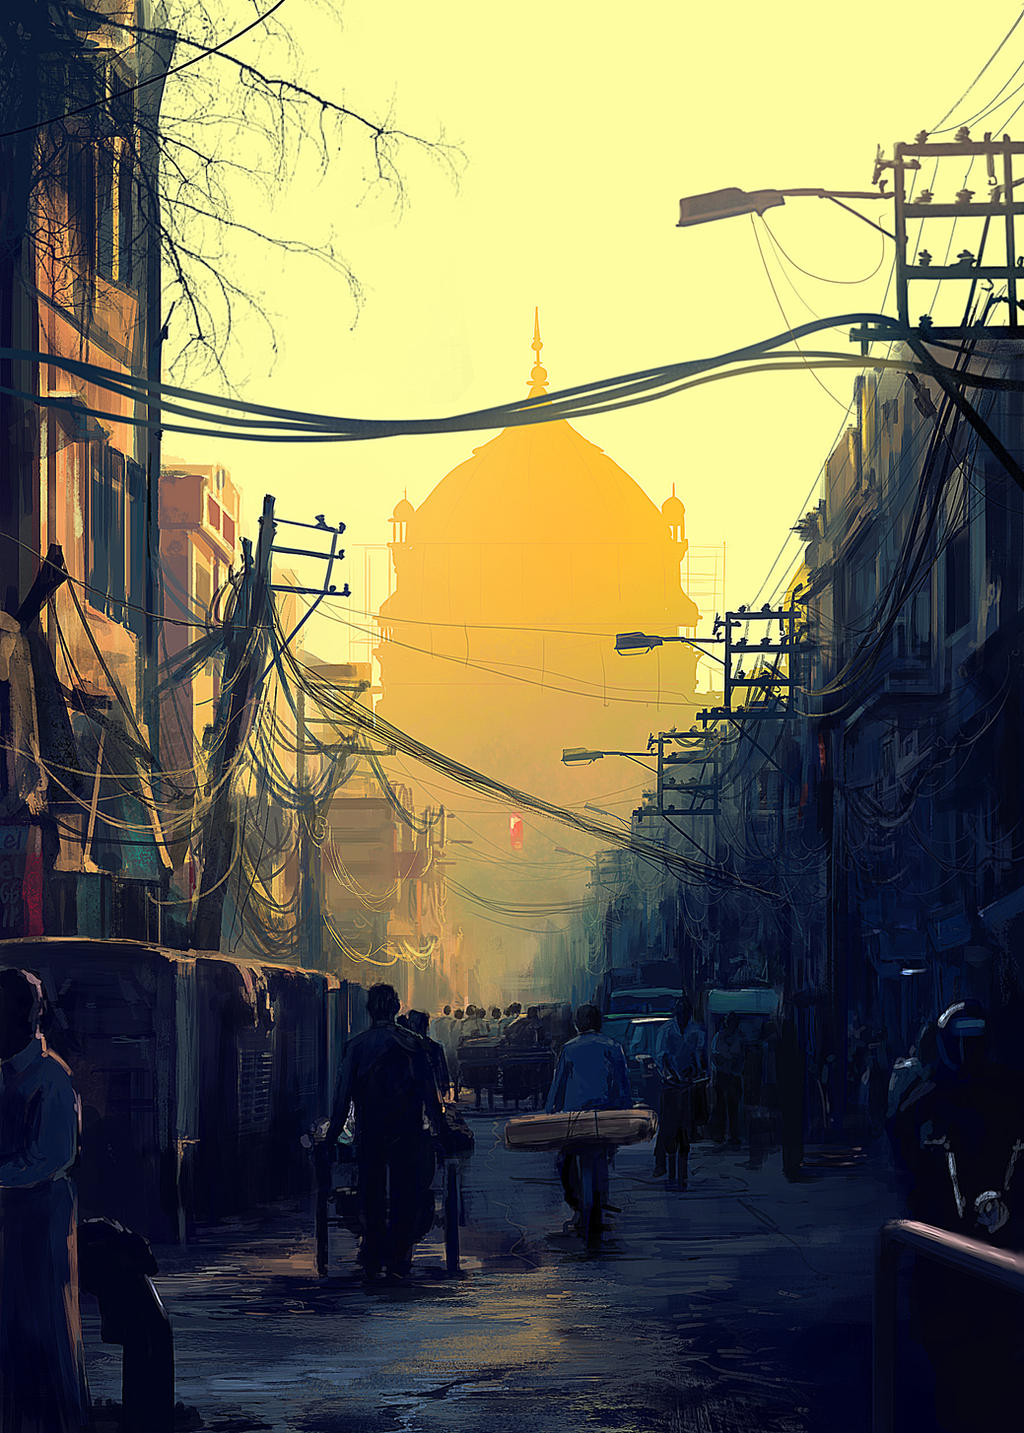 India by tonyhurst